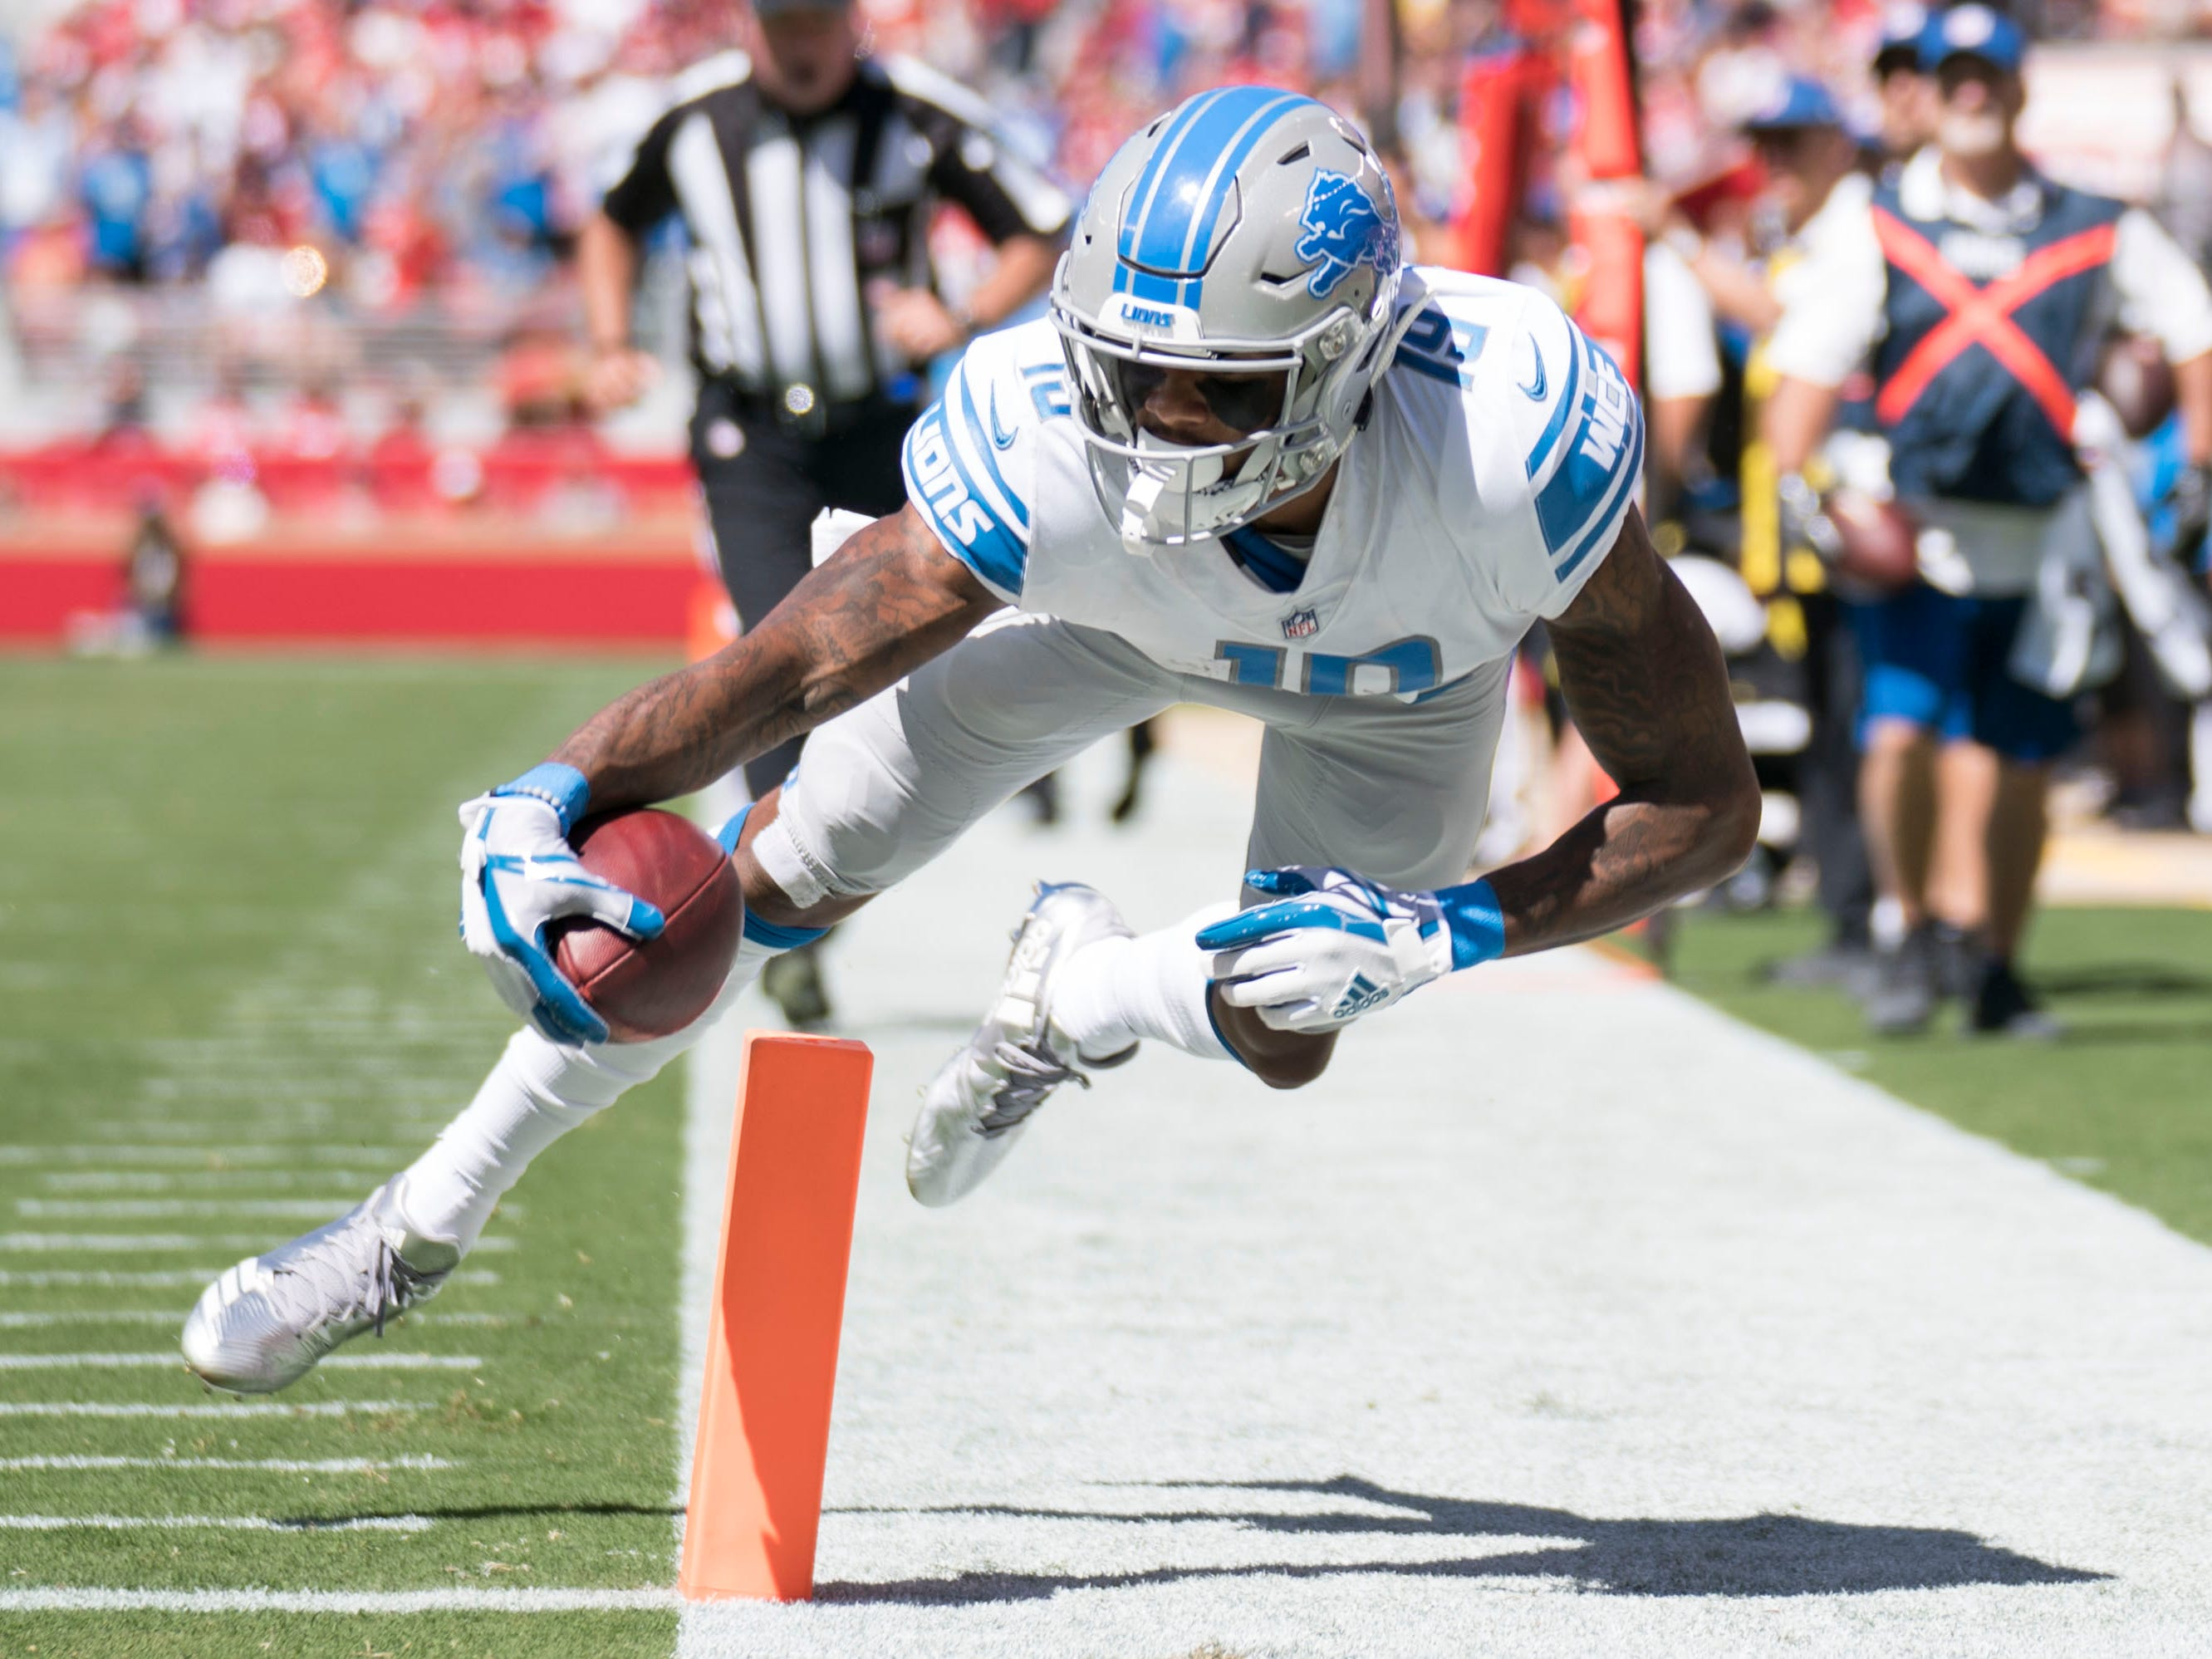 September 16, 2018; Santa Clara, CA, USA; Detroit Lions wide receiver Kenny Golladay (19) scores a touchdown against the San Francisco 49ers during the first quarter at Levi's Stadium. Mandatory Credit: Kyle Terada-USA TODAY Sports